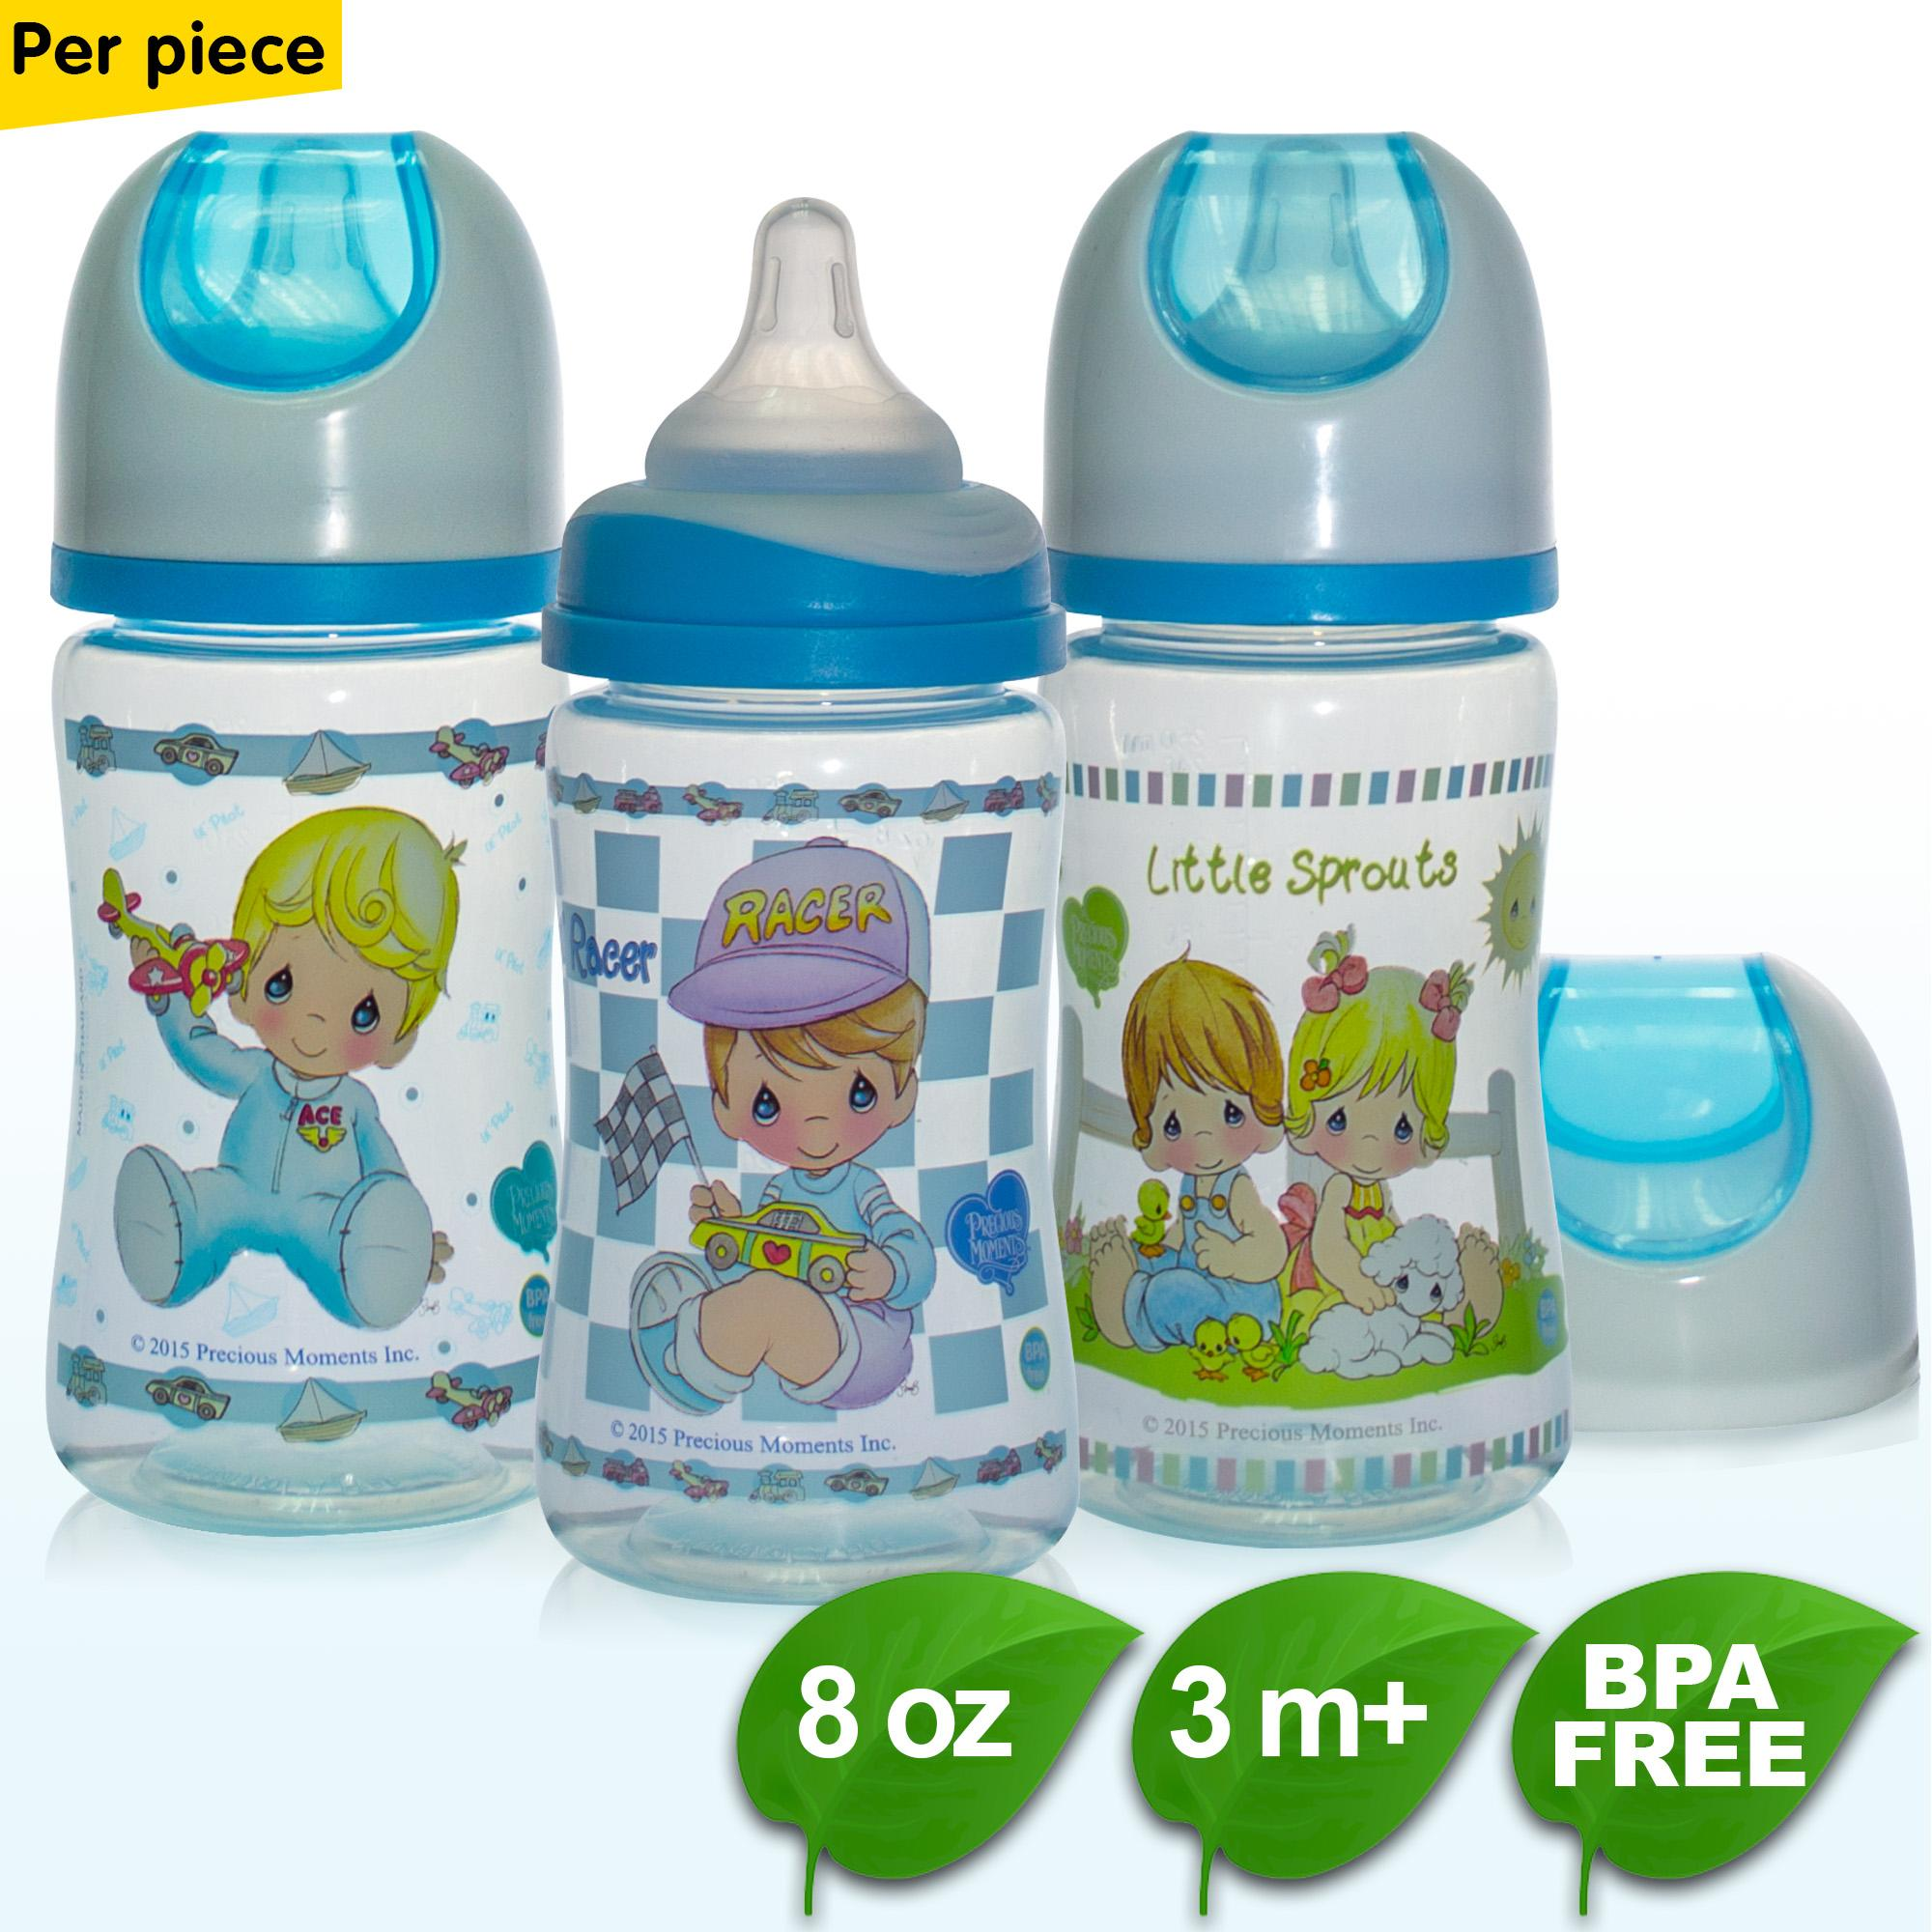 Bpa Free 8oz 2 Toned Hood Wide Neck Feeding Bottle - Tinted - Per Piece By Coral Babies.